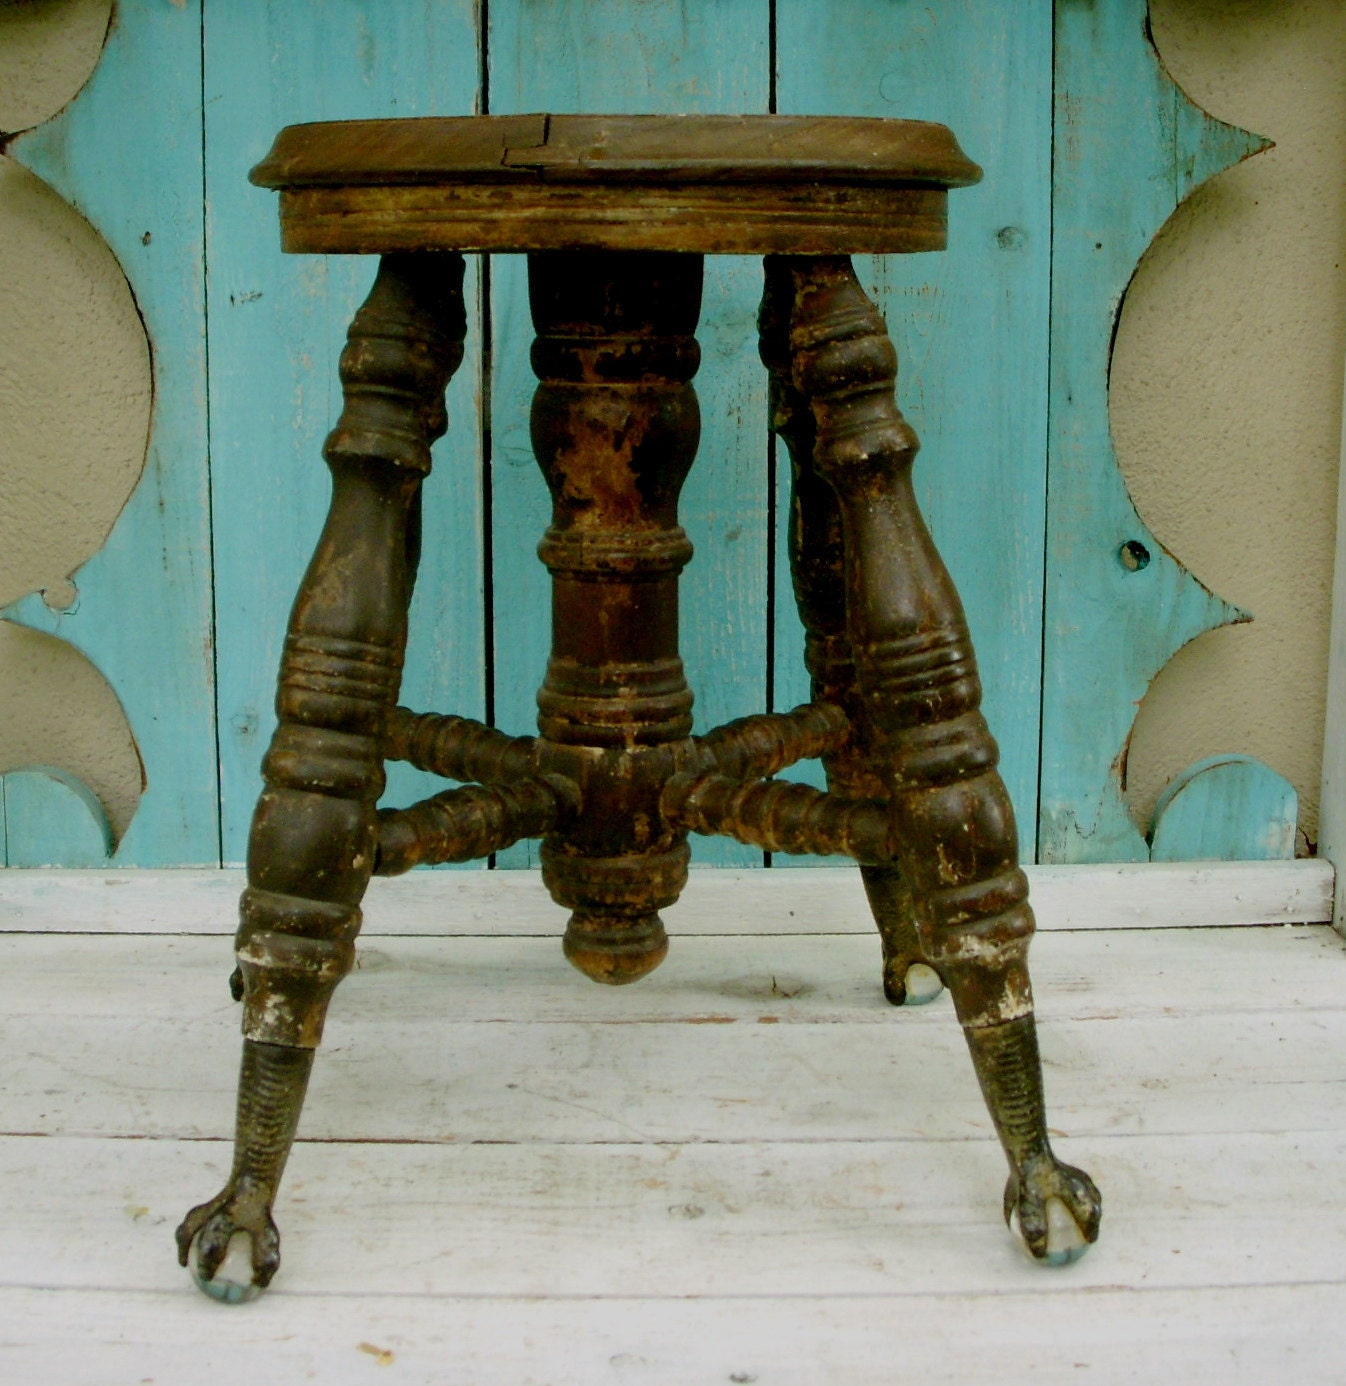 ?zoom & Antique Wooden Stool Glass Claw Feet Piano Bench Chair islam-shia.org